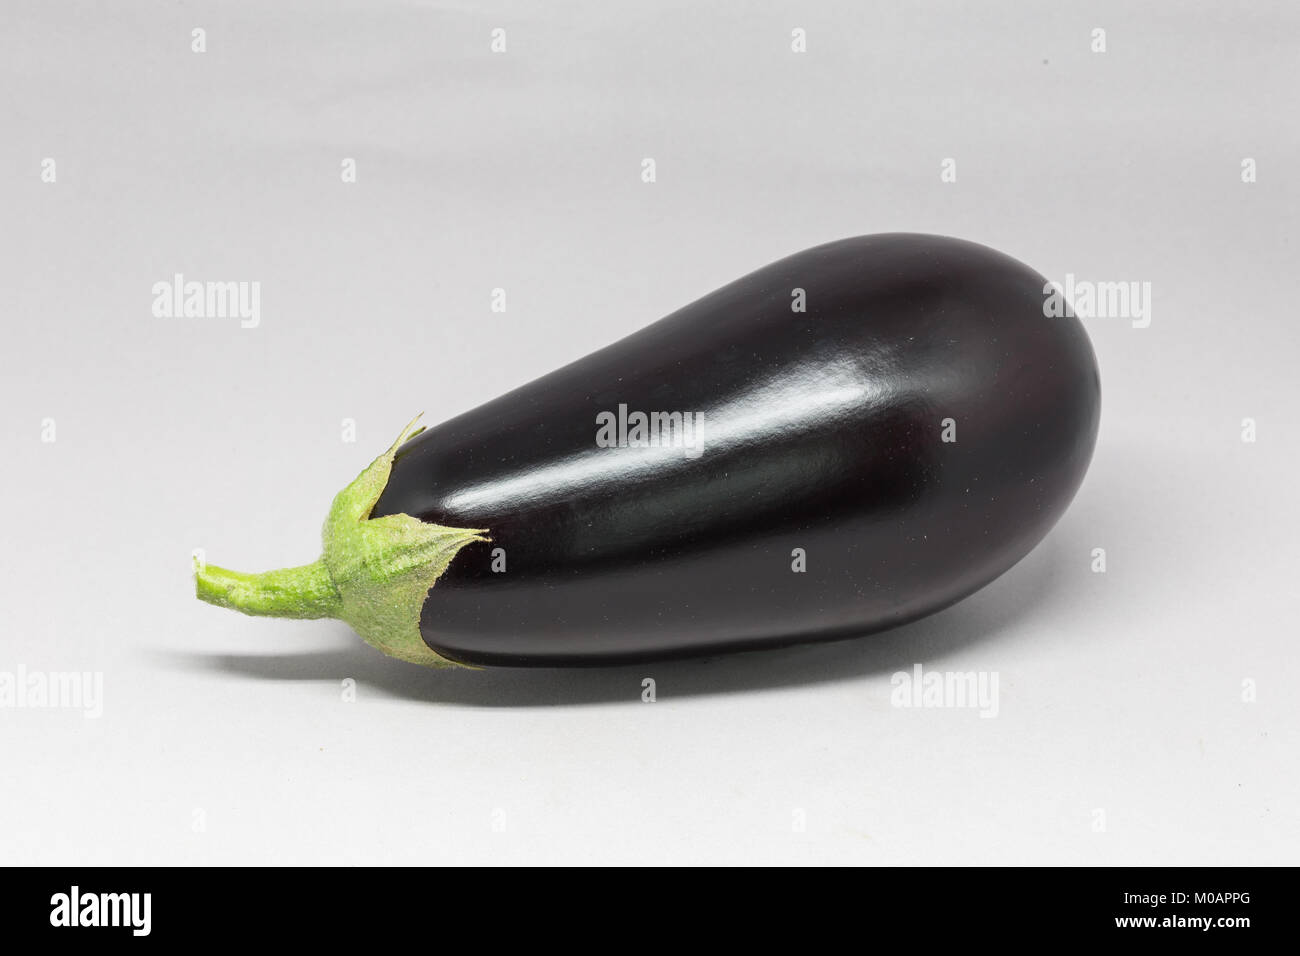 Eggplant black beauty type studio picture - Stock Image